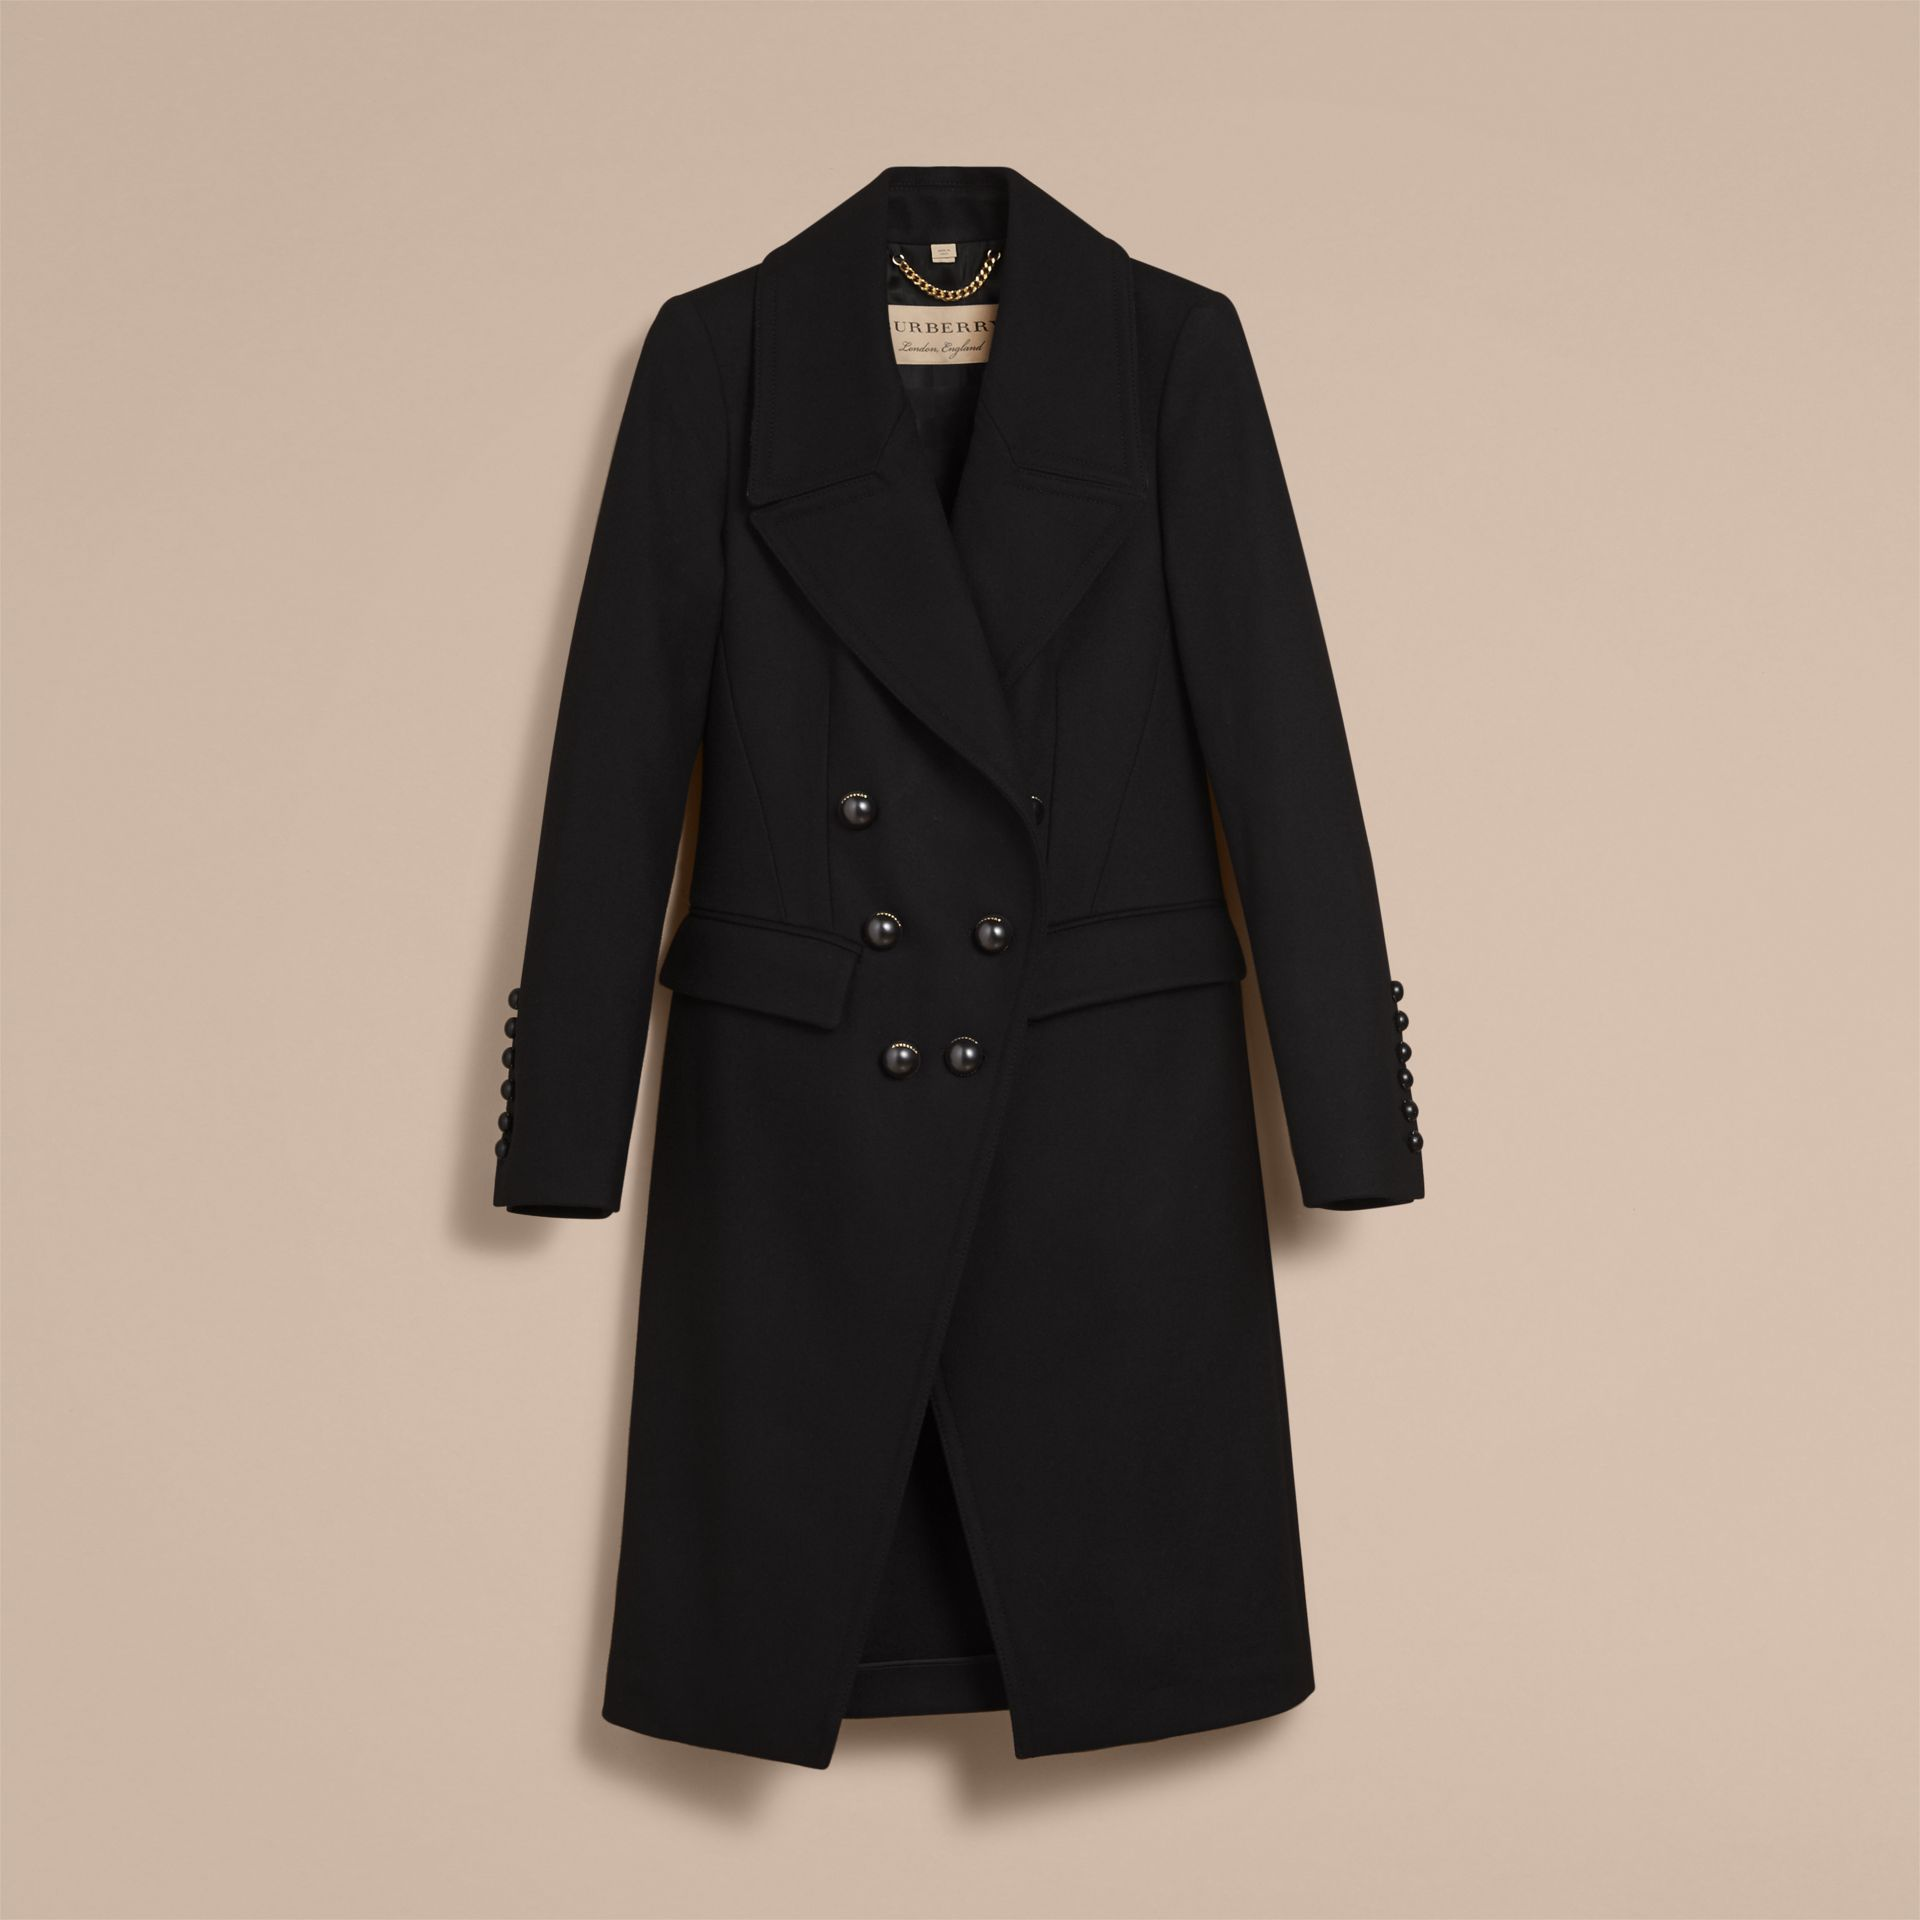 Wool Blend Double-breasted Coat in Black - Women | Burberry Canada - gallery image 4